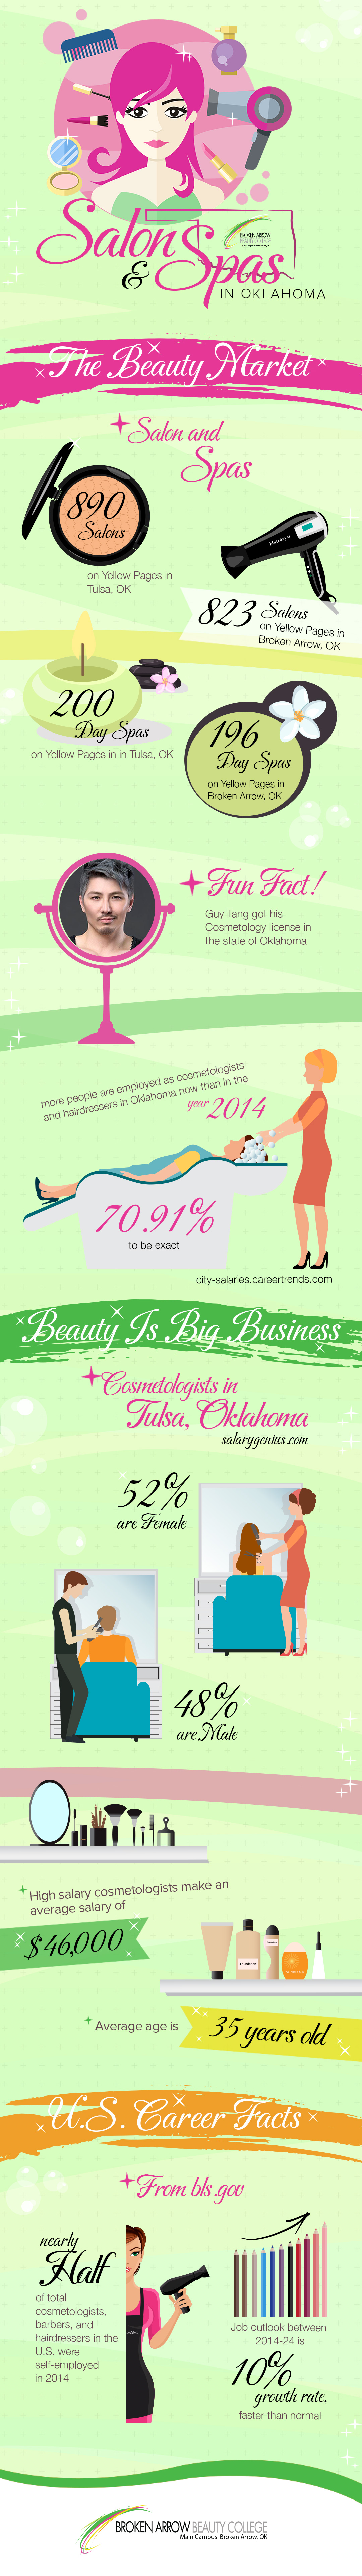 facts about the OK beauty industry